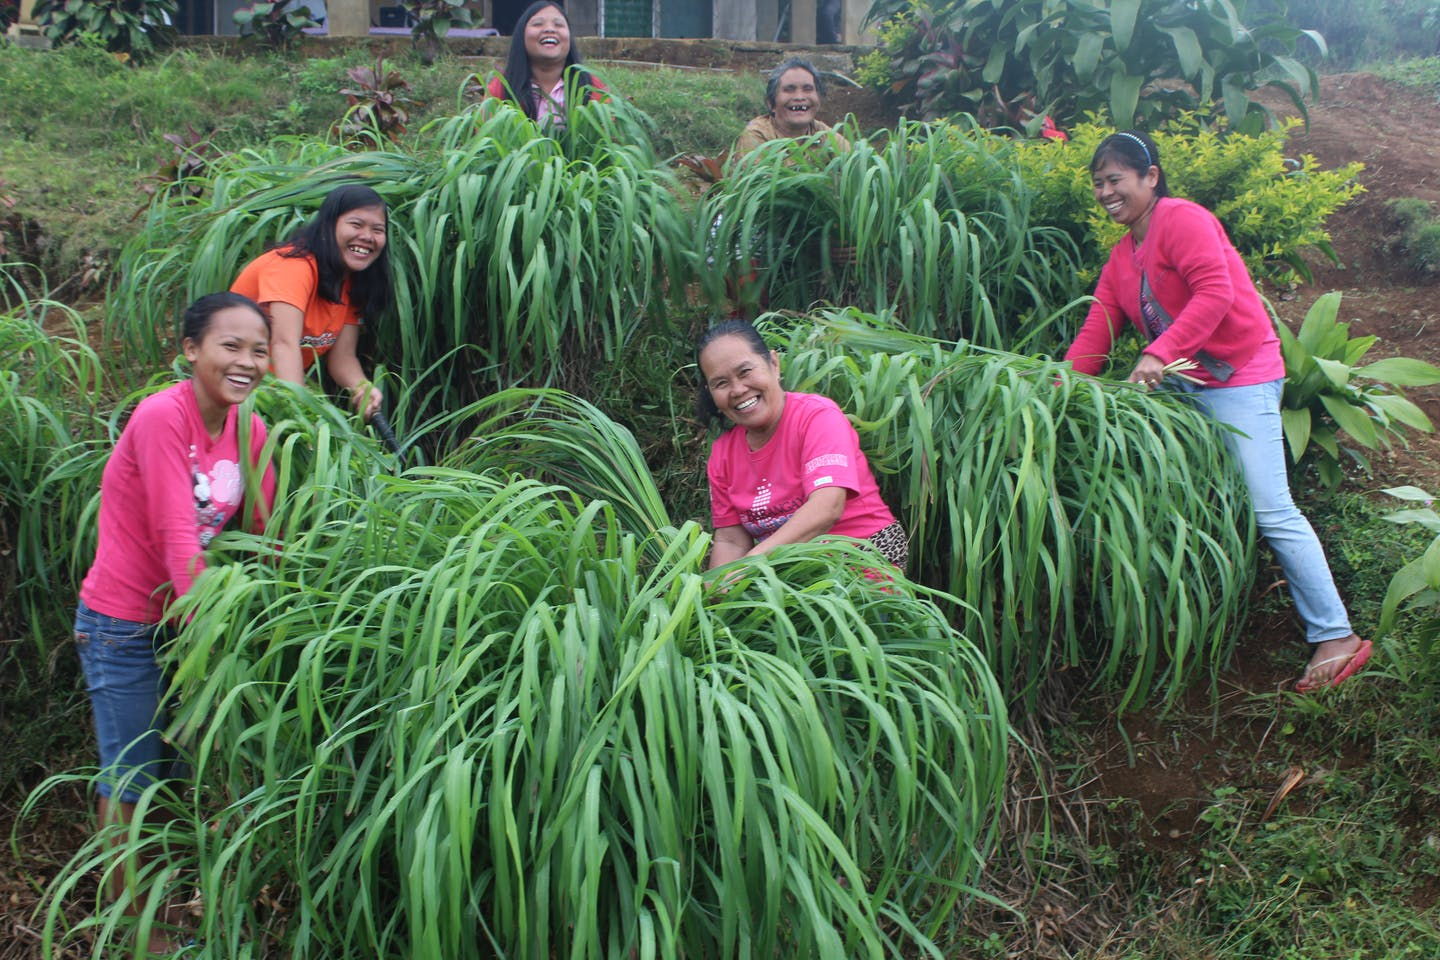 Women farmers harvesting citronella grass plants in Bukidnon in the Visayas region of the Philippines